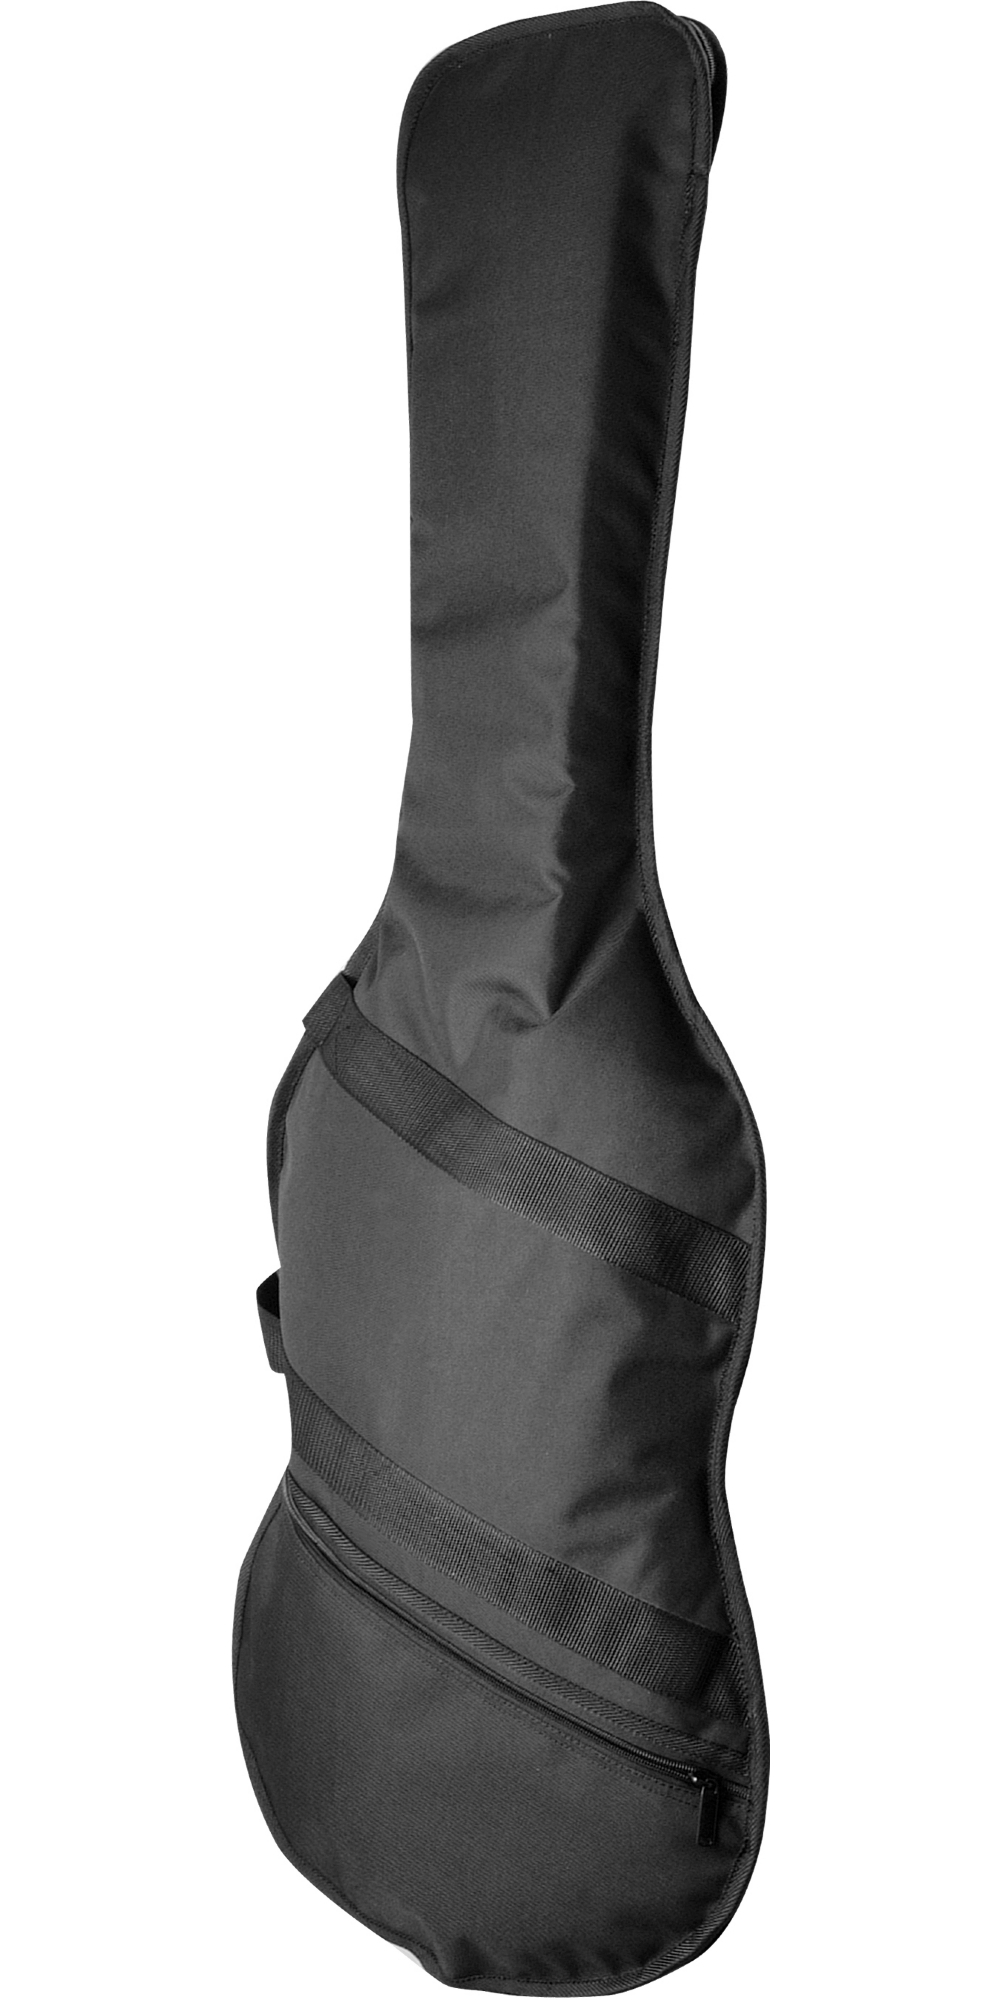 Musician's Gear Bass Guitar Gig Bag by Musician's Gear